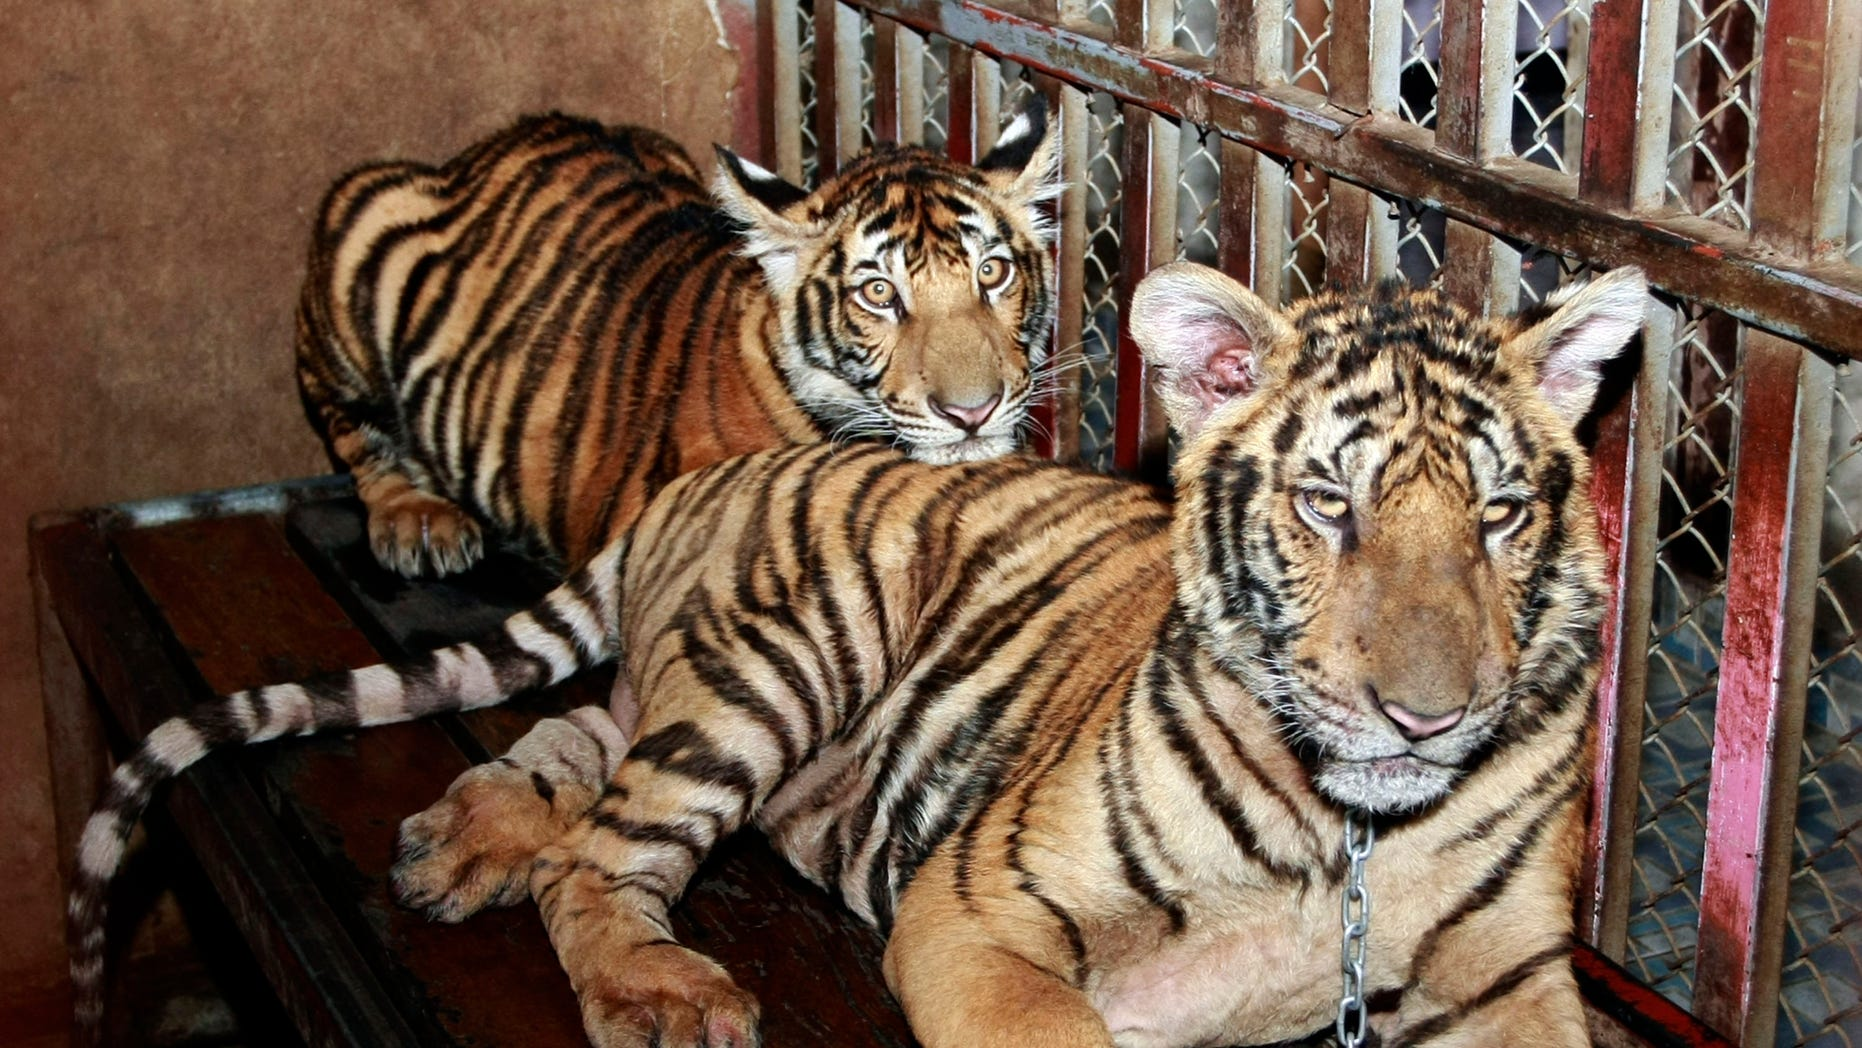 Sept. 10, 2012 - Two tiger cubs are chained and kept in an enclosure on the roof top of the apartment building in Pathum Thani proivince, central Thailand.